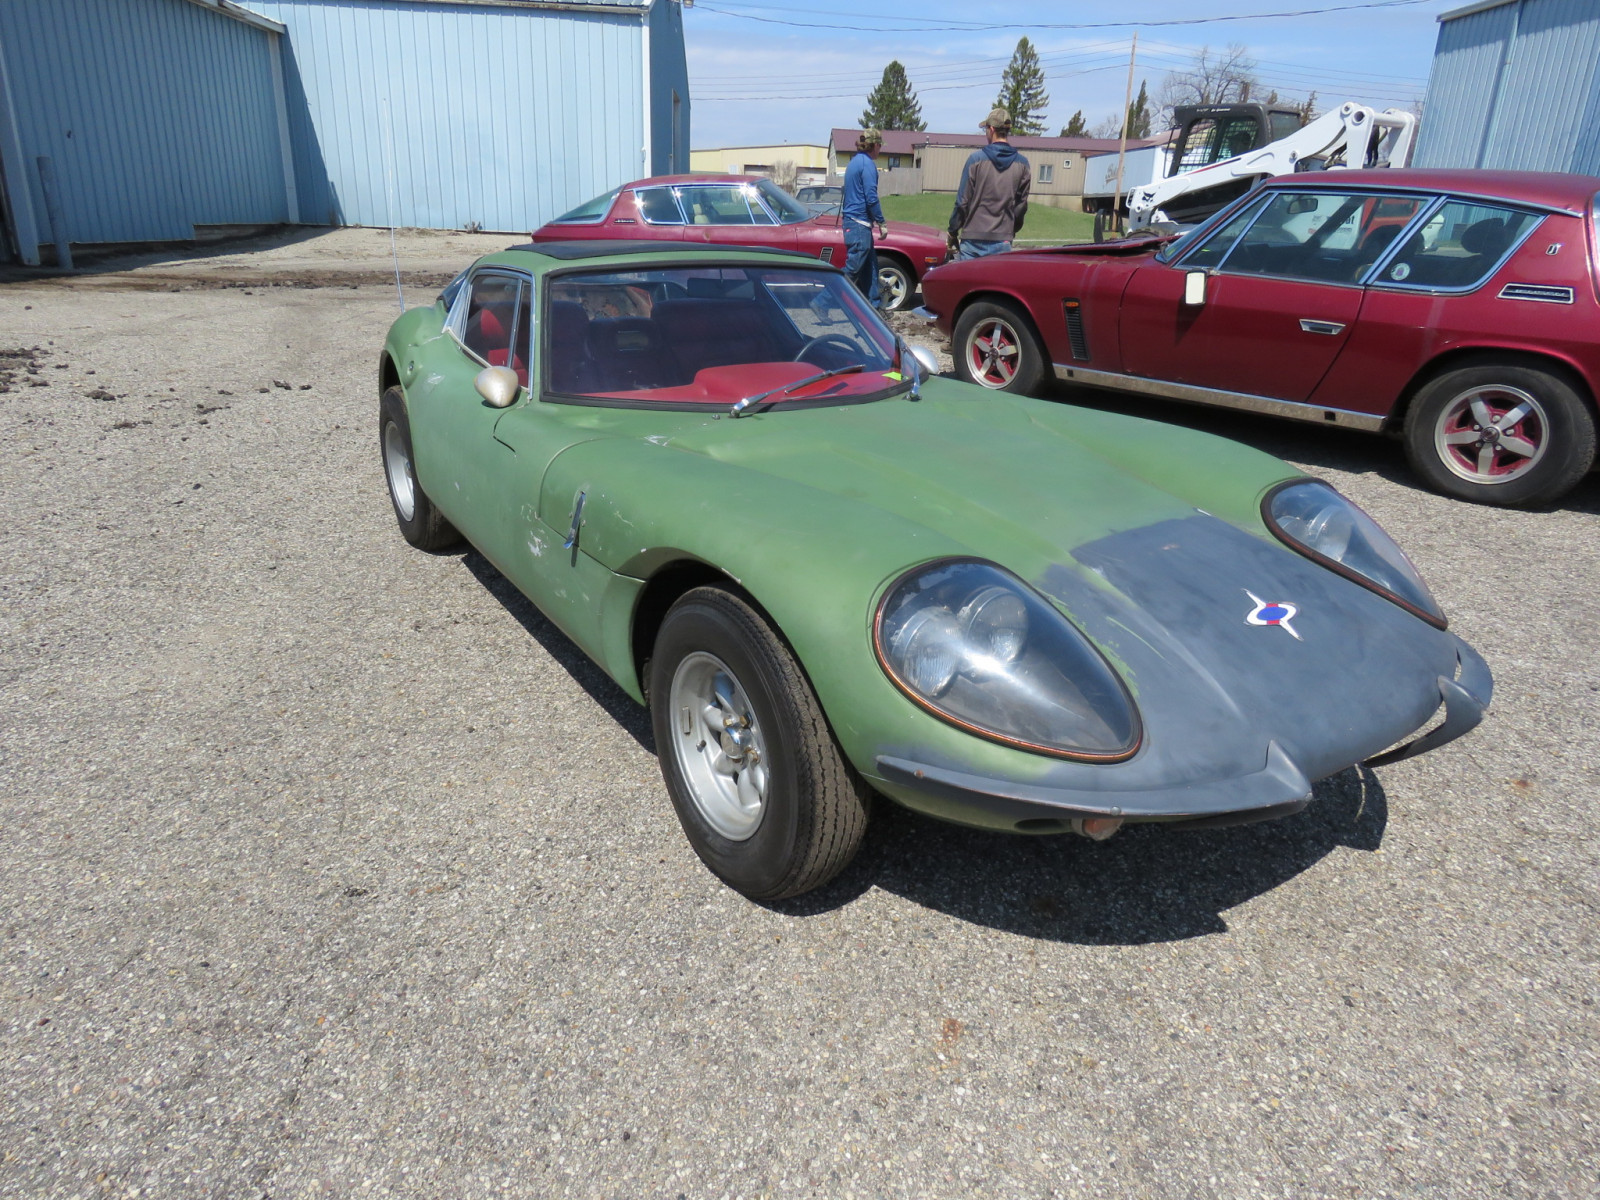 1969 Marcos Model 1600 Coupe - Image 3